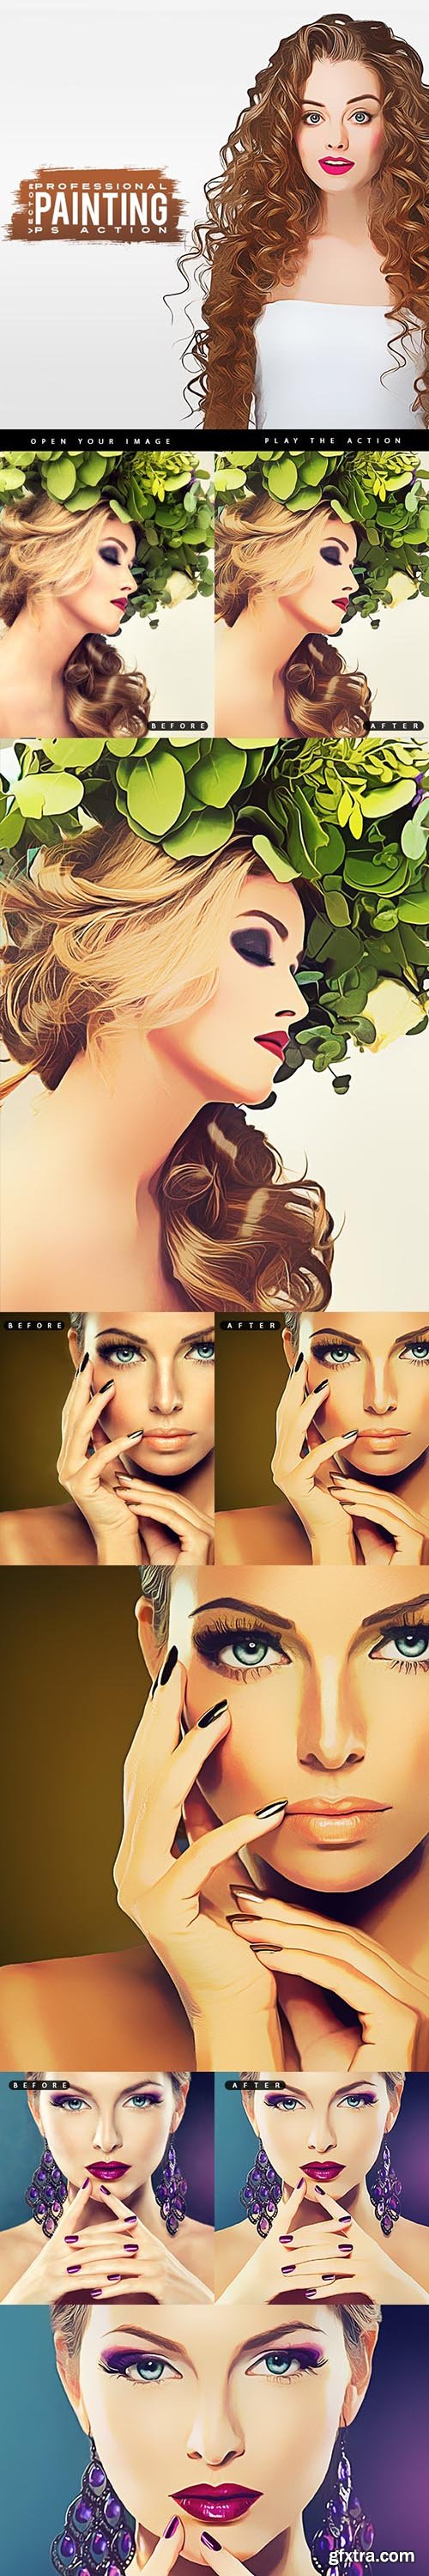 GraphicRiver - Pro Vector Painting - Photoshop Action 28835214